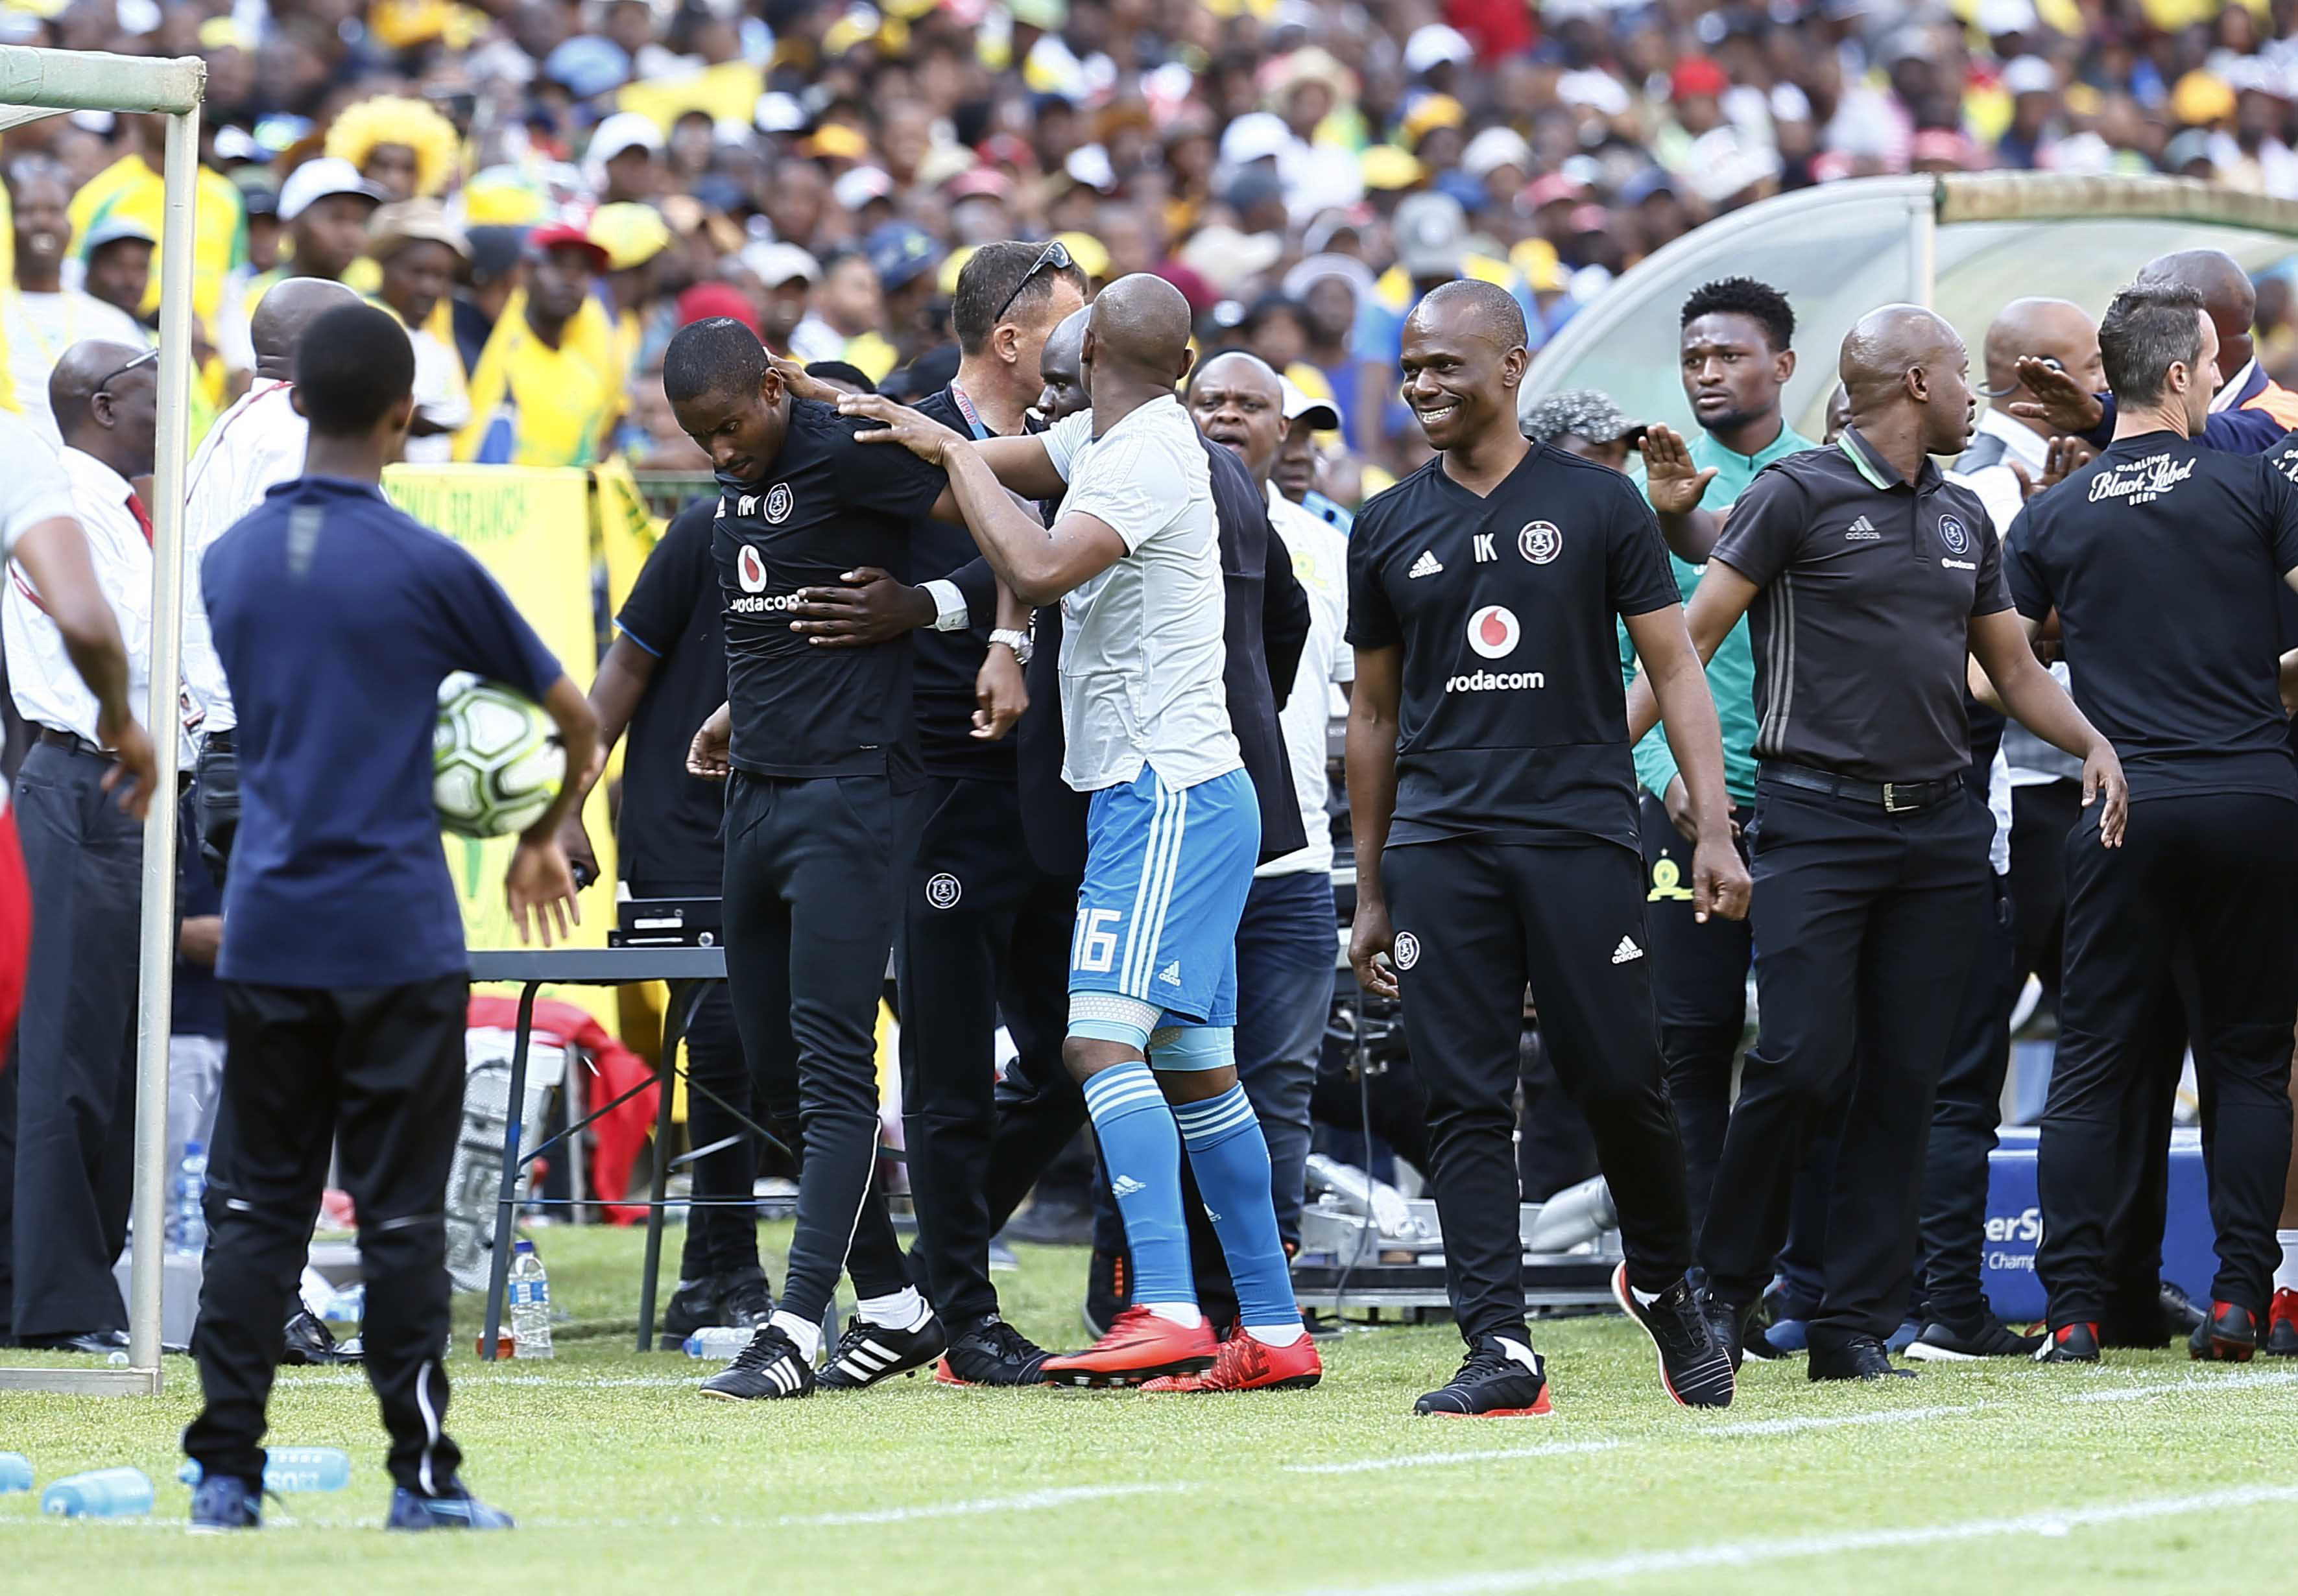 10 November 2018: Pirates assistant coach Rhulani Mokwena is led away after the confrontation with a Sundowns fan during the Absa Premiership match between Mamelodi Sundowns and Orlando Pirates at Loftus Versfeld. (Photo by Phill Magakoe/Gallo Images)